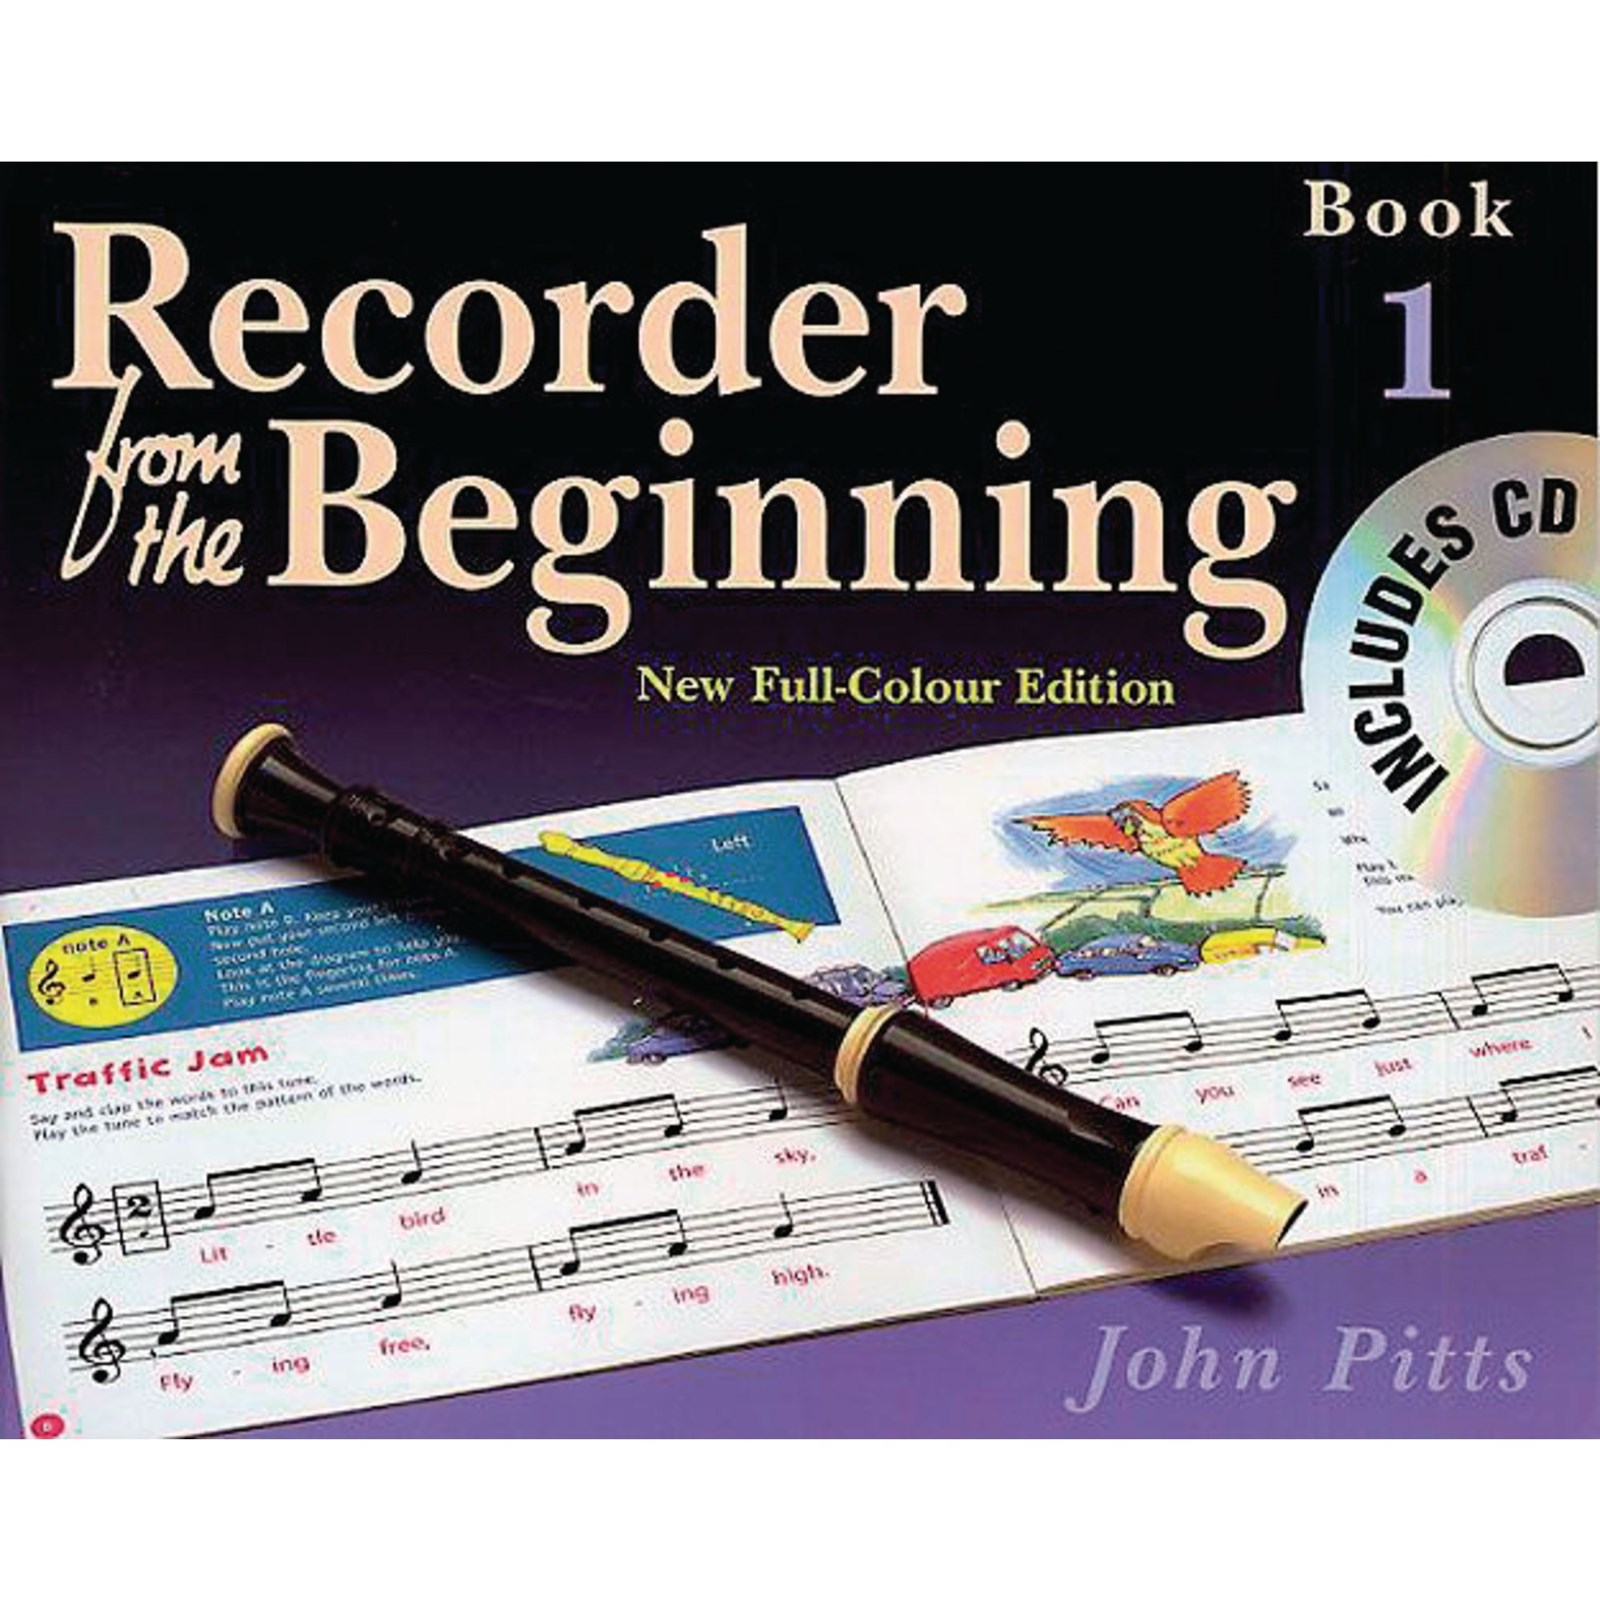 Recorder from the Beginning Method Books - Pupil's Book 1 + CD